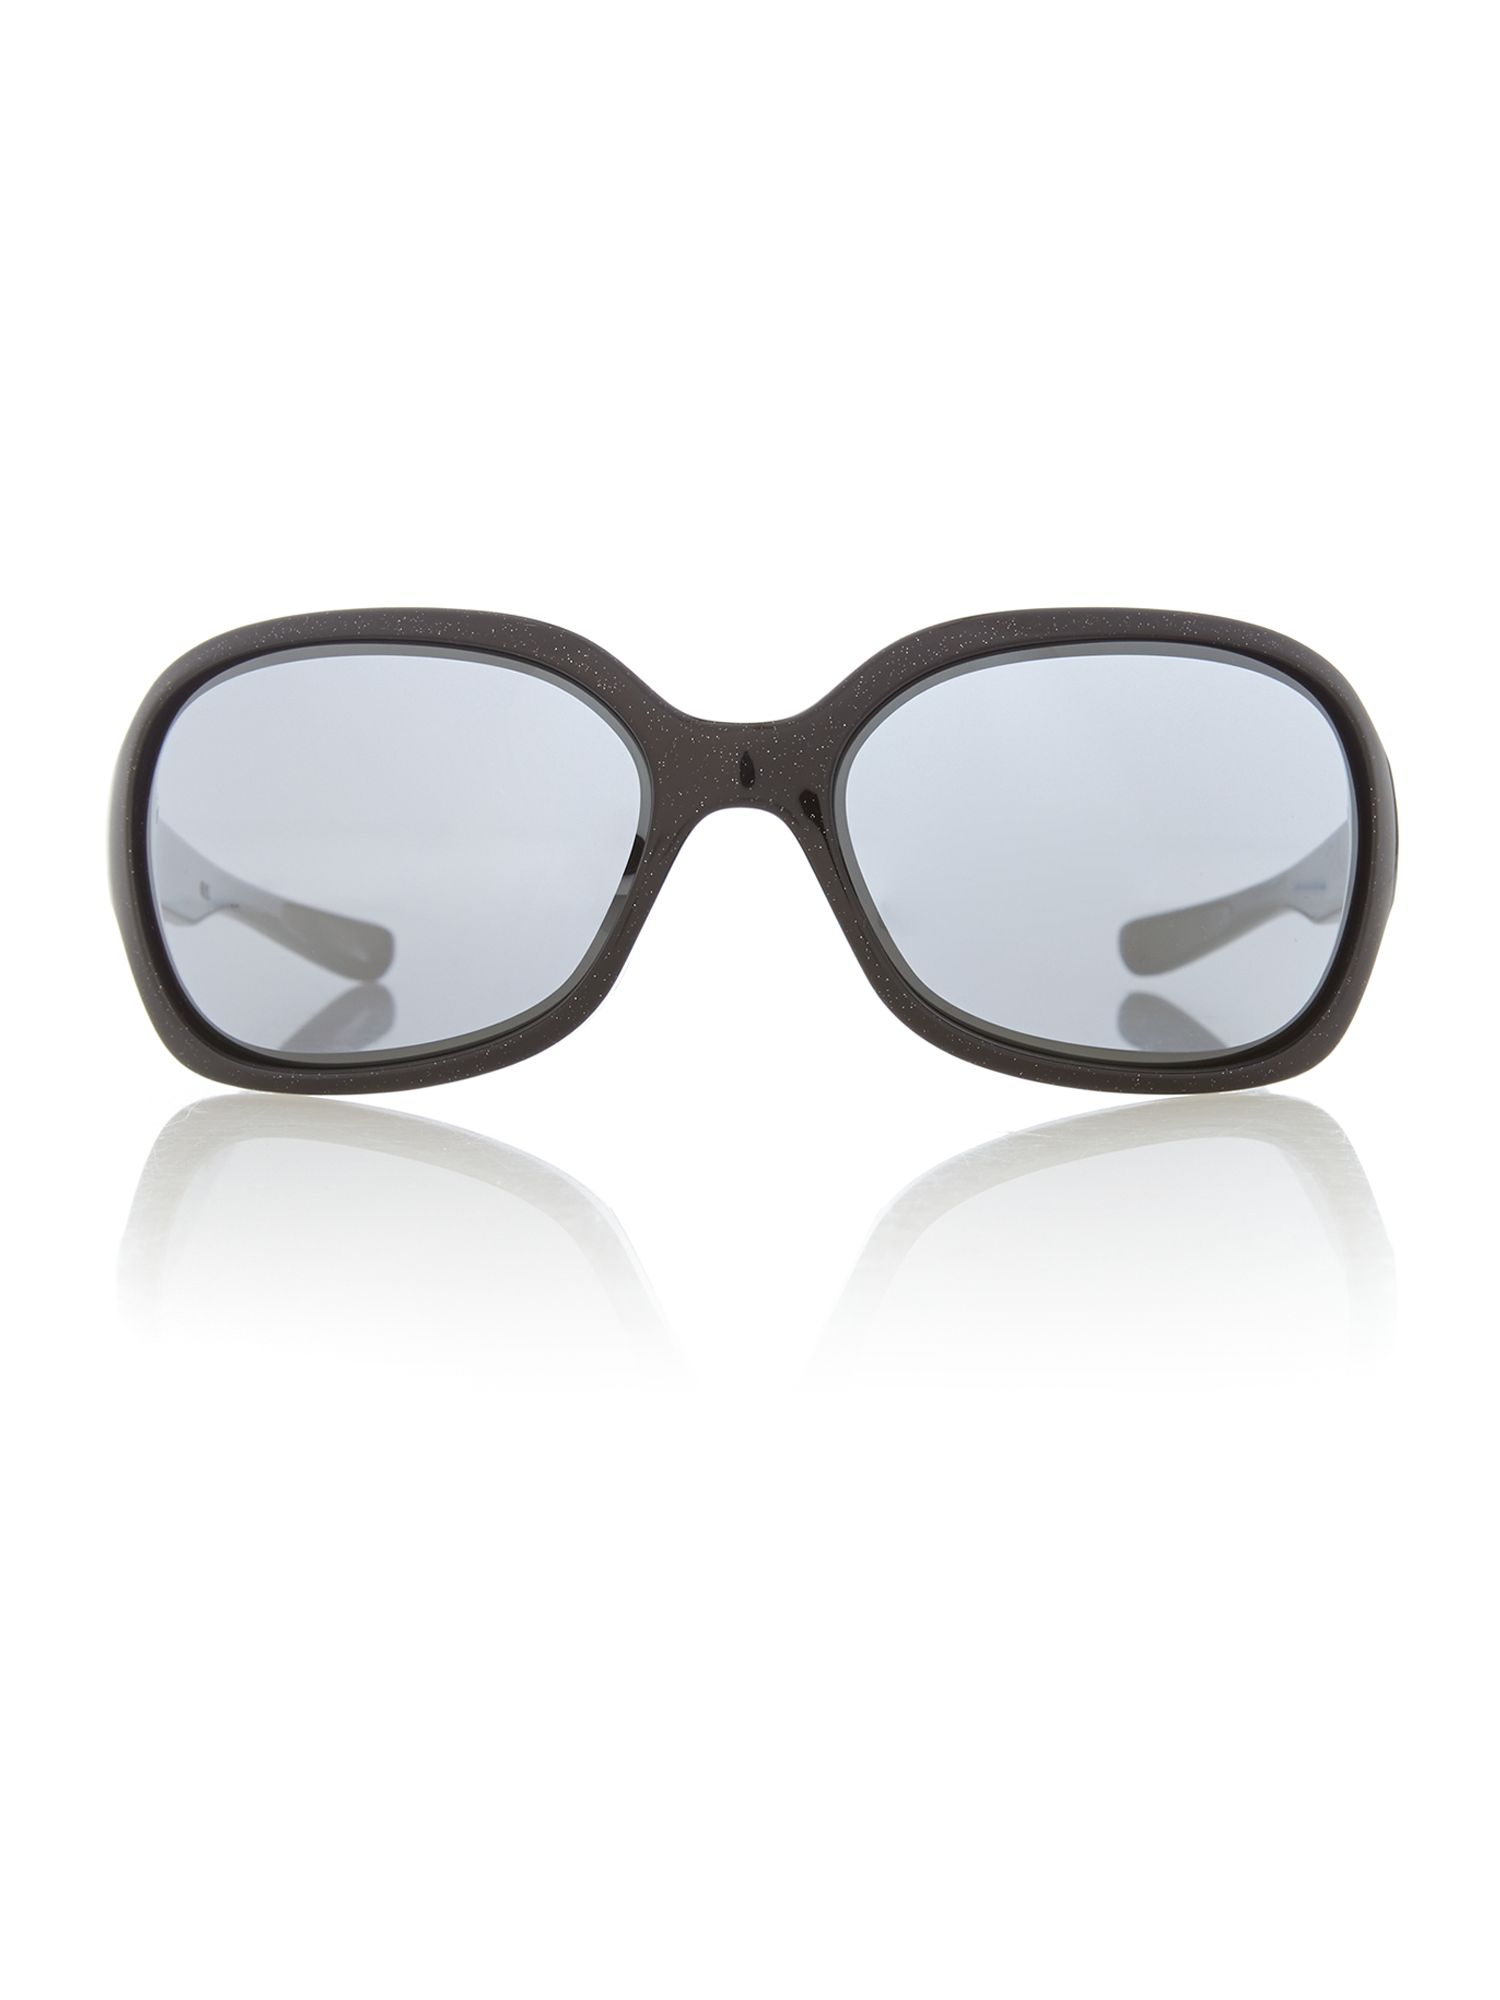 Ladies metallic black pulse sunglasses